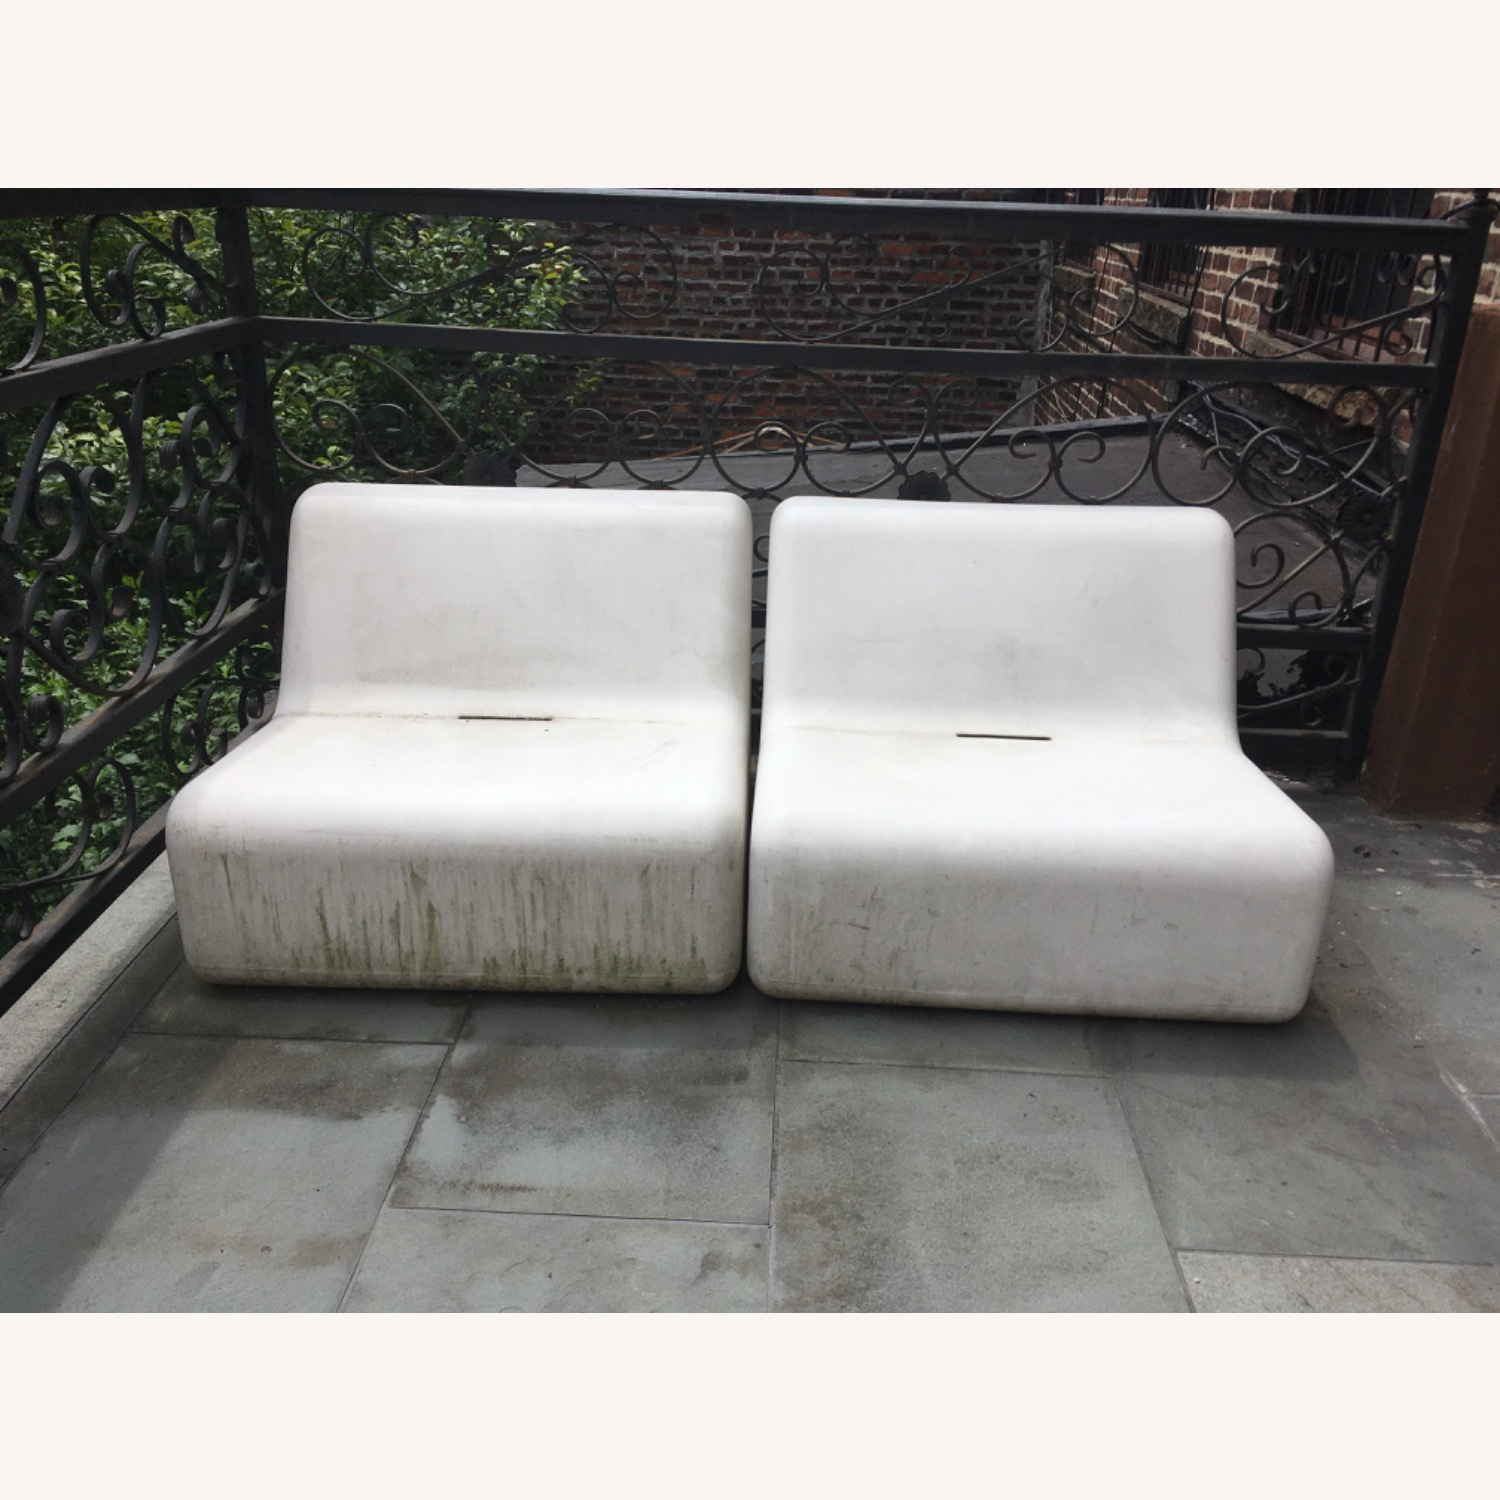 Modern Recycled Plastic Outdoor Seating - image-3